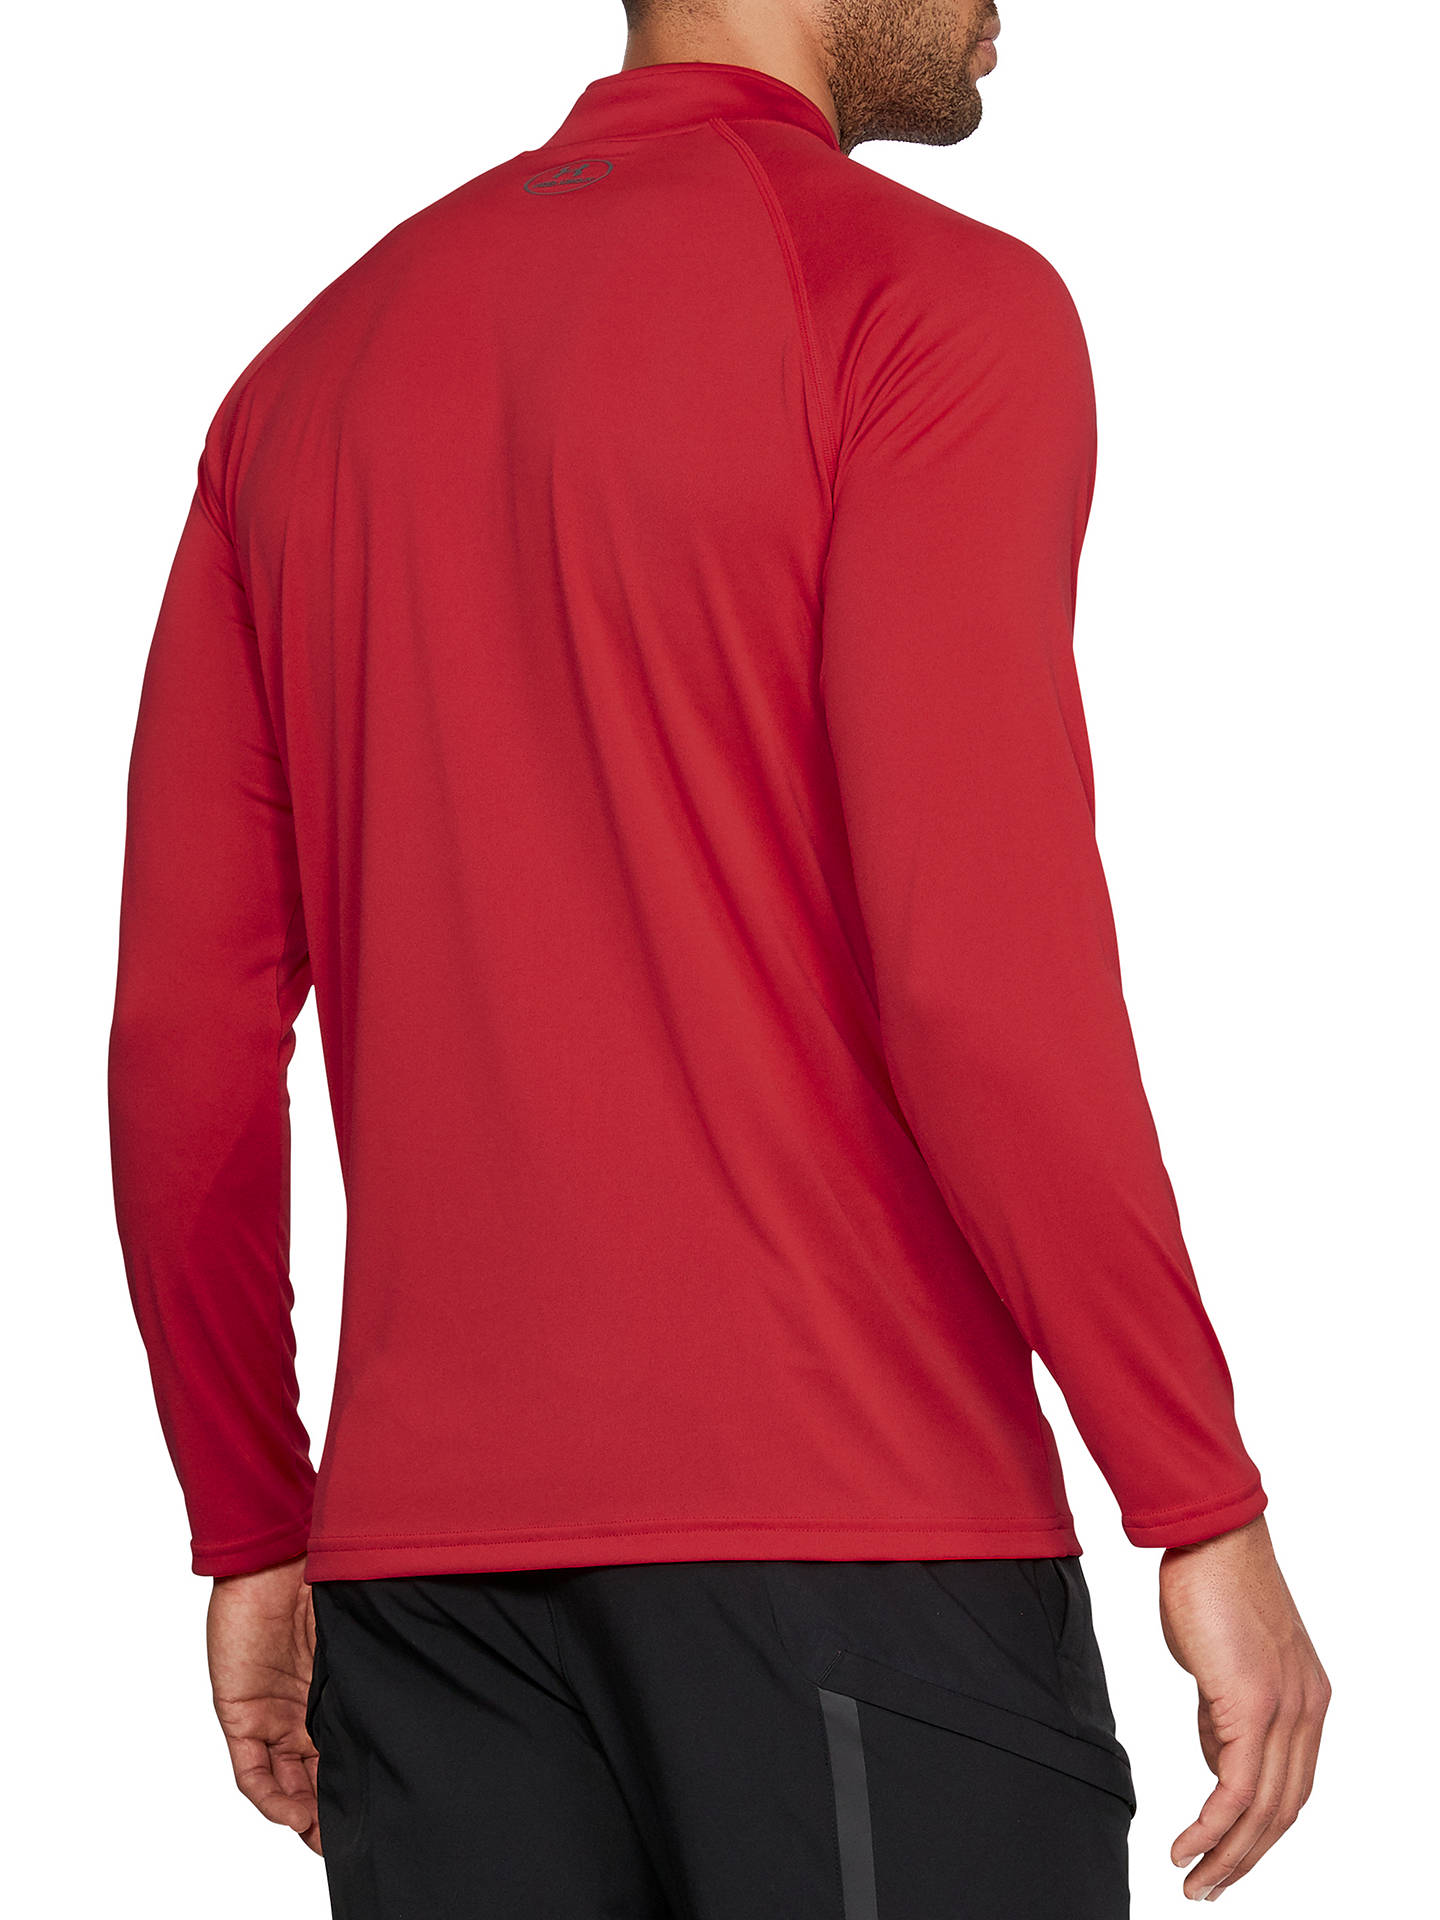 4050f9d31 ... Buy Under Armour Tech 1/4 Zip Long Sleeve Top, Pierce Red, XL ...